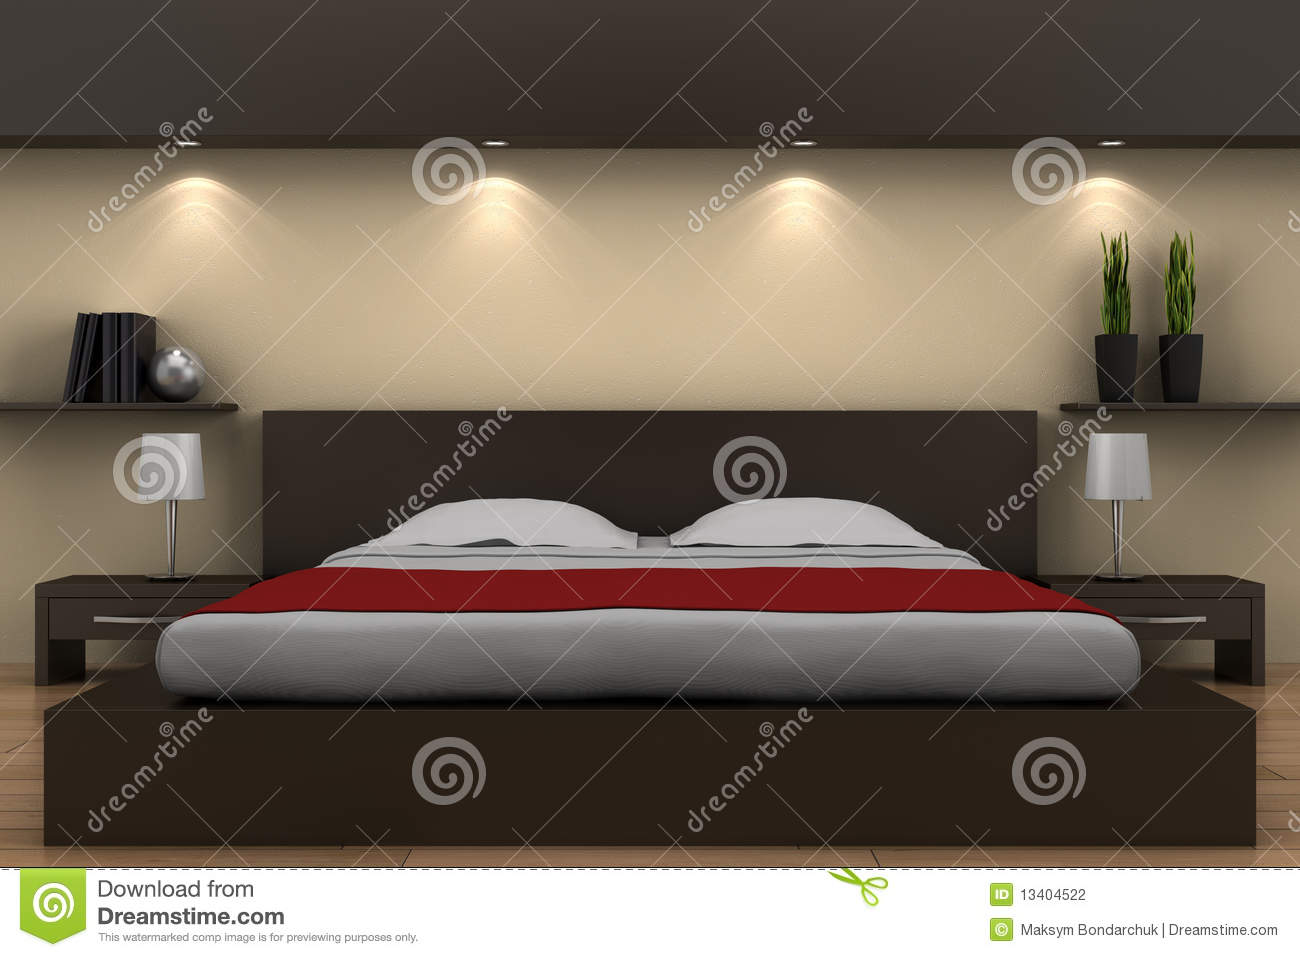 modernes schlafzimmer mit braunem bett stock abbildung illustration 13404522. Black Bedroom Furniture Sets. Home Design Ideas